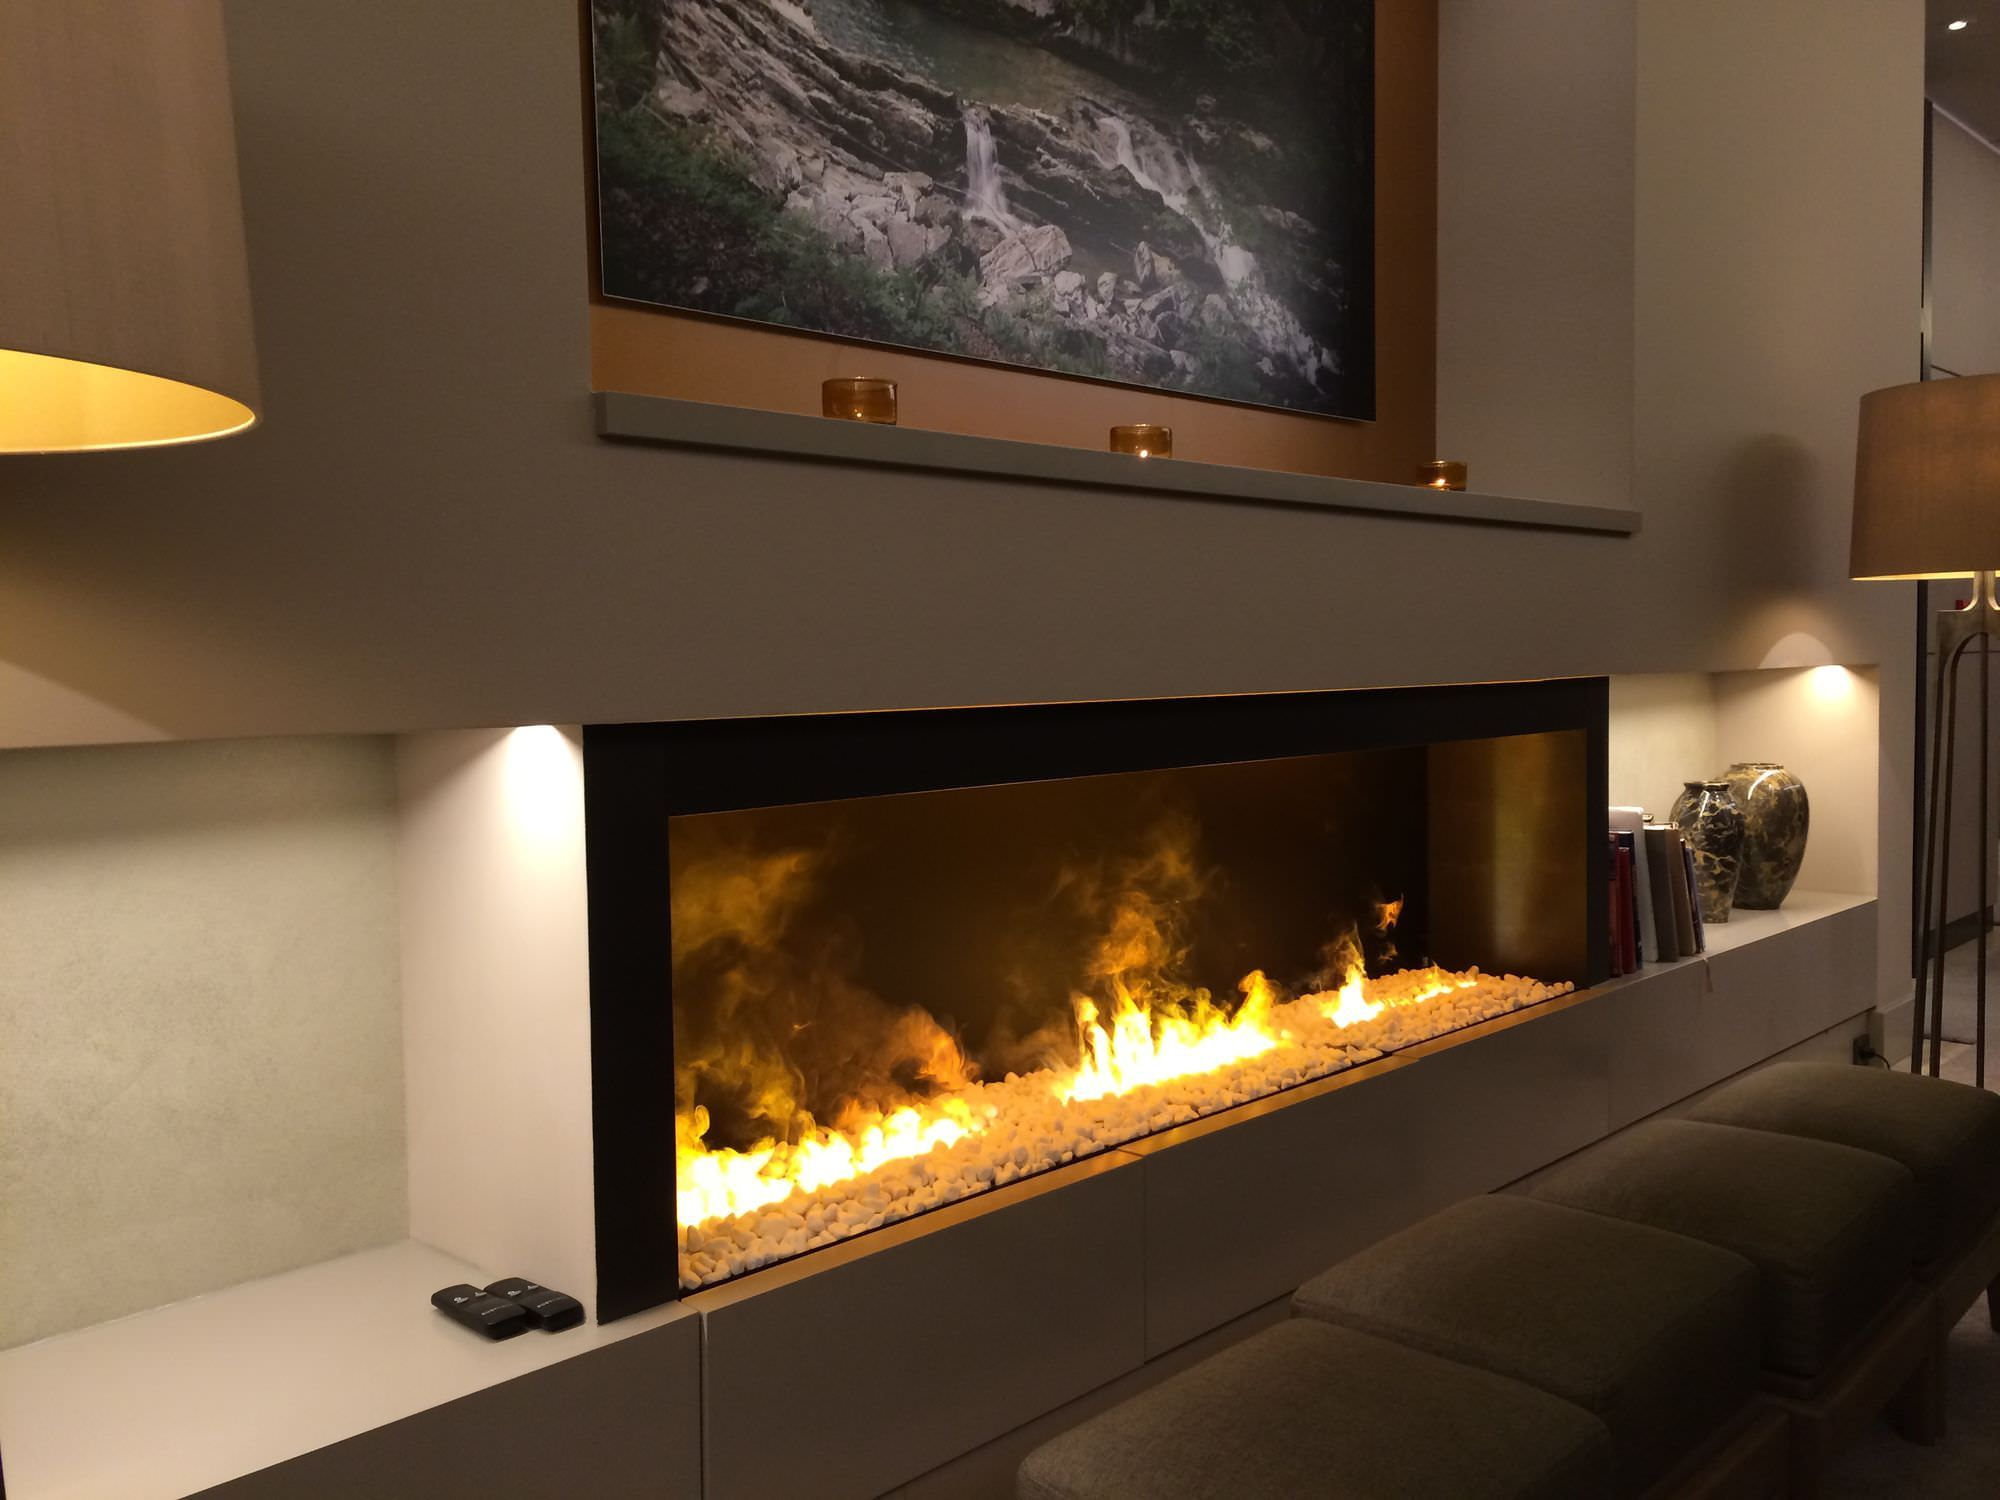 Electrical Fireplace Insert Modul L Kiesel Kamin Design Gmbh Co